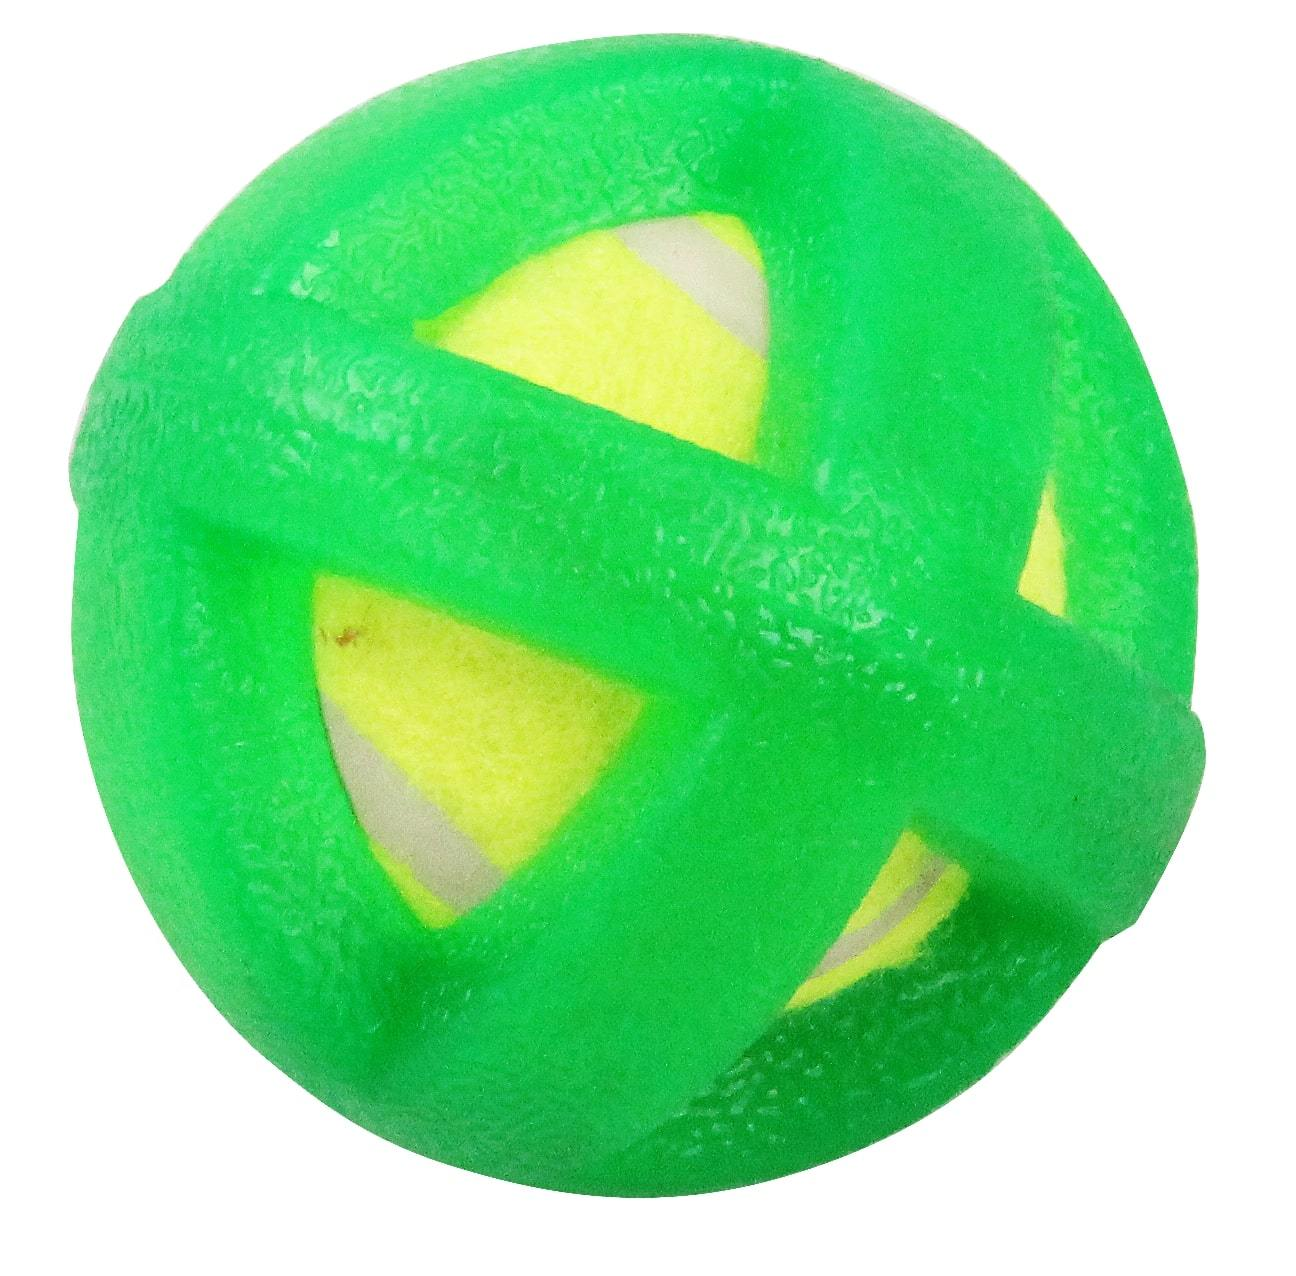 Pawise: Hollow Ball image